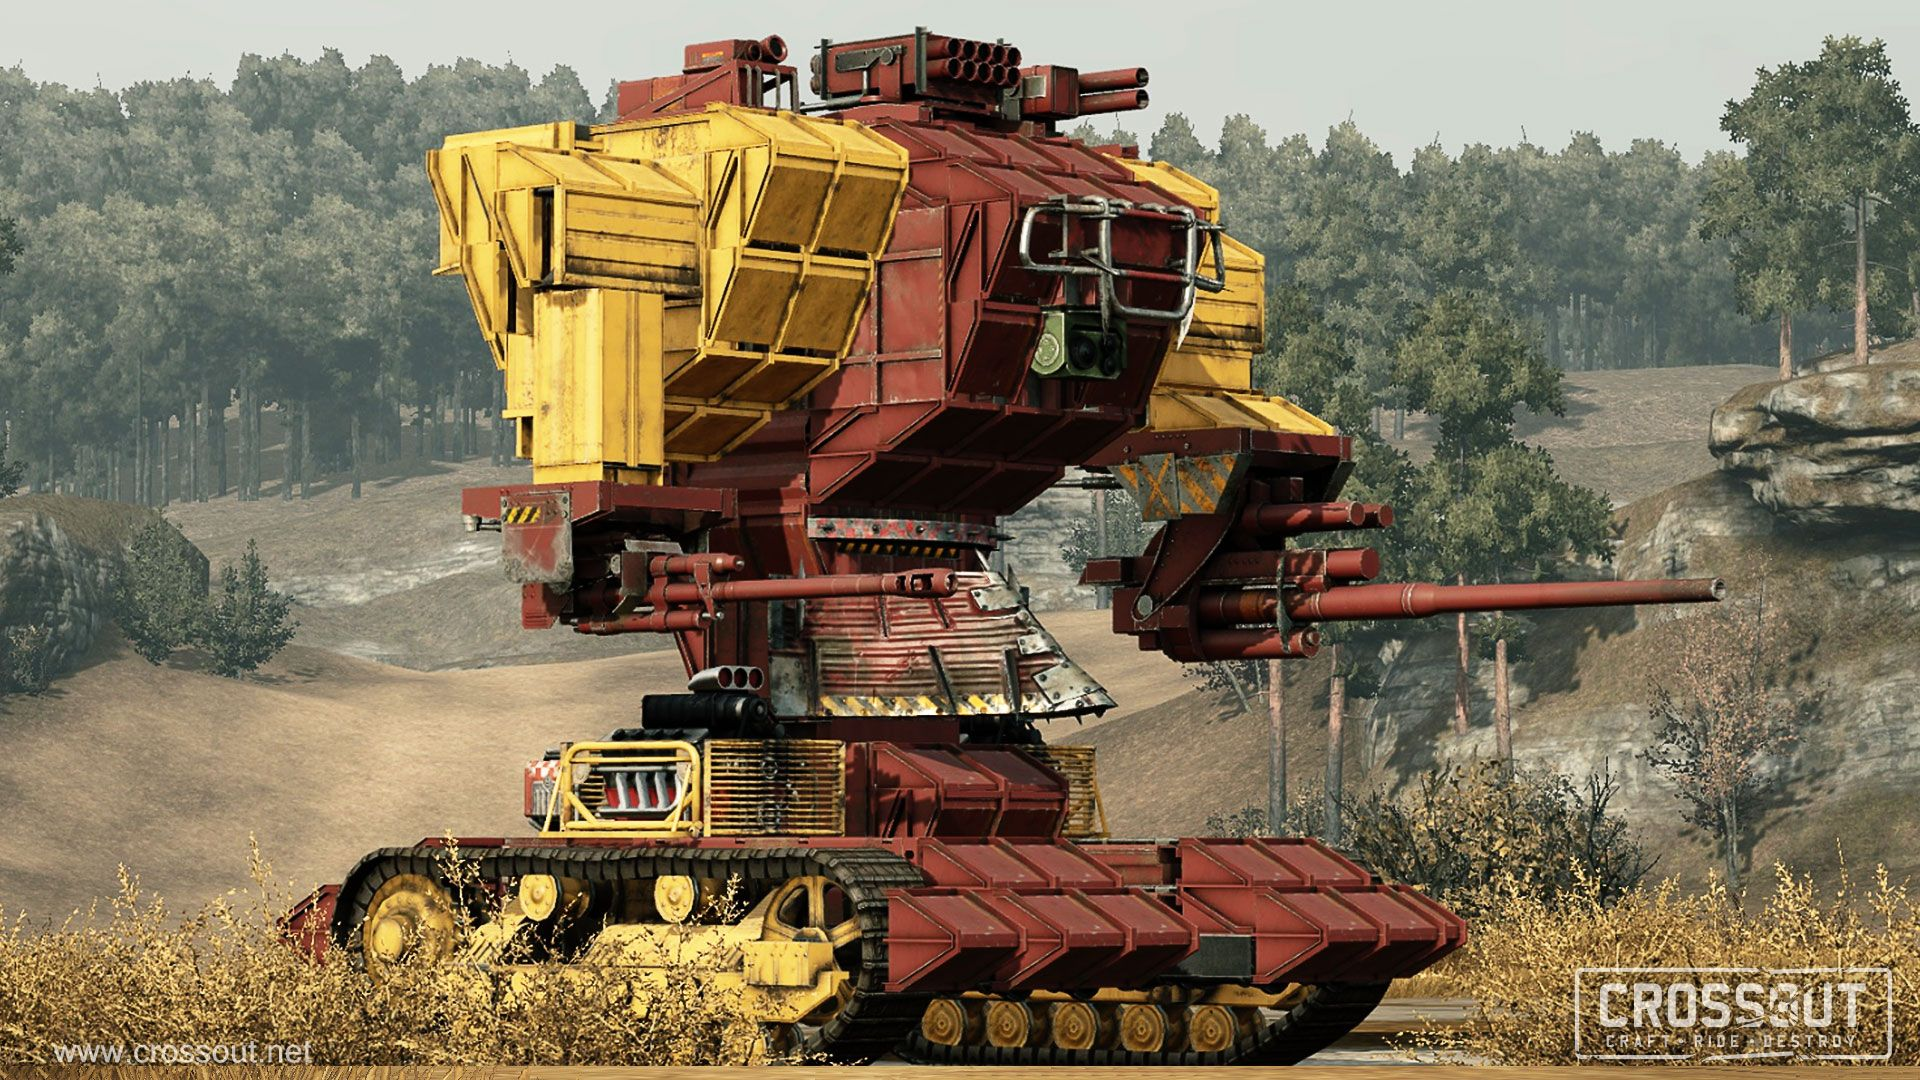 Crossout Dbarque Sur Console Le 30 Mai MMO Free To Play